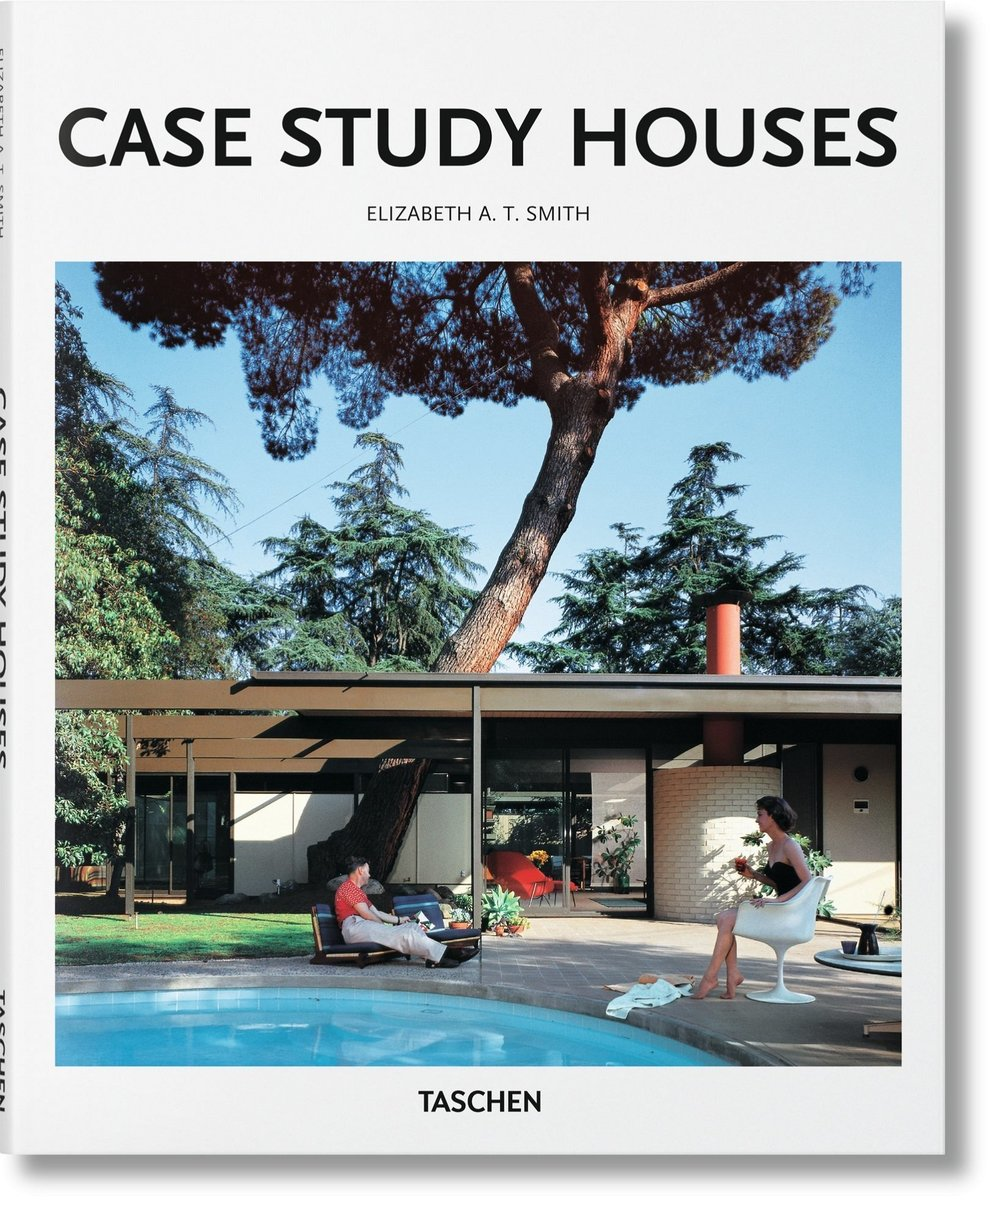 Copy of Case Study Houses